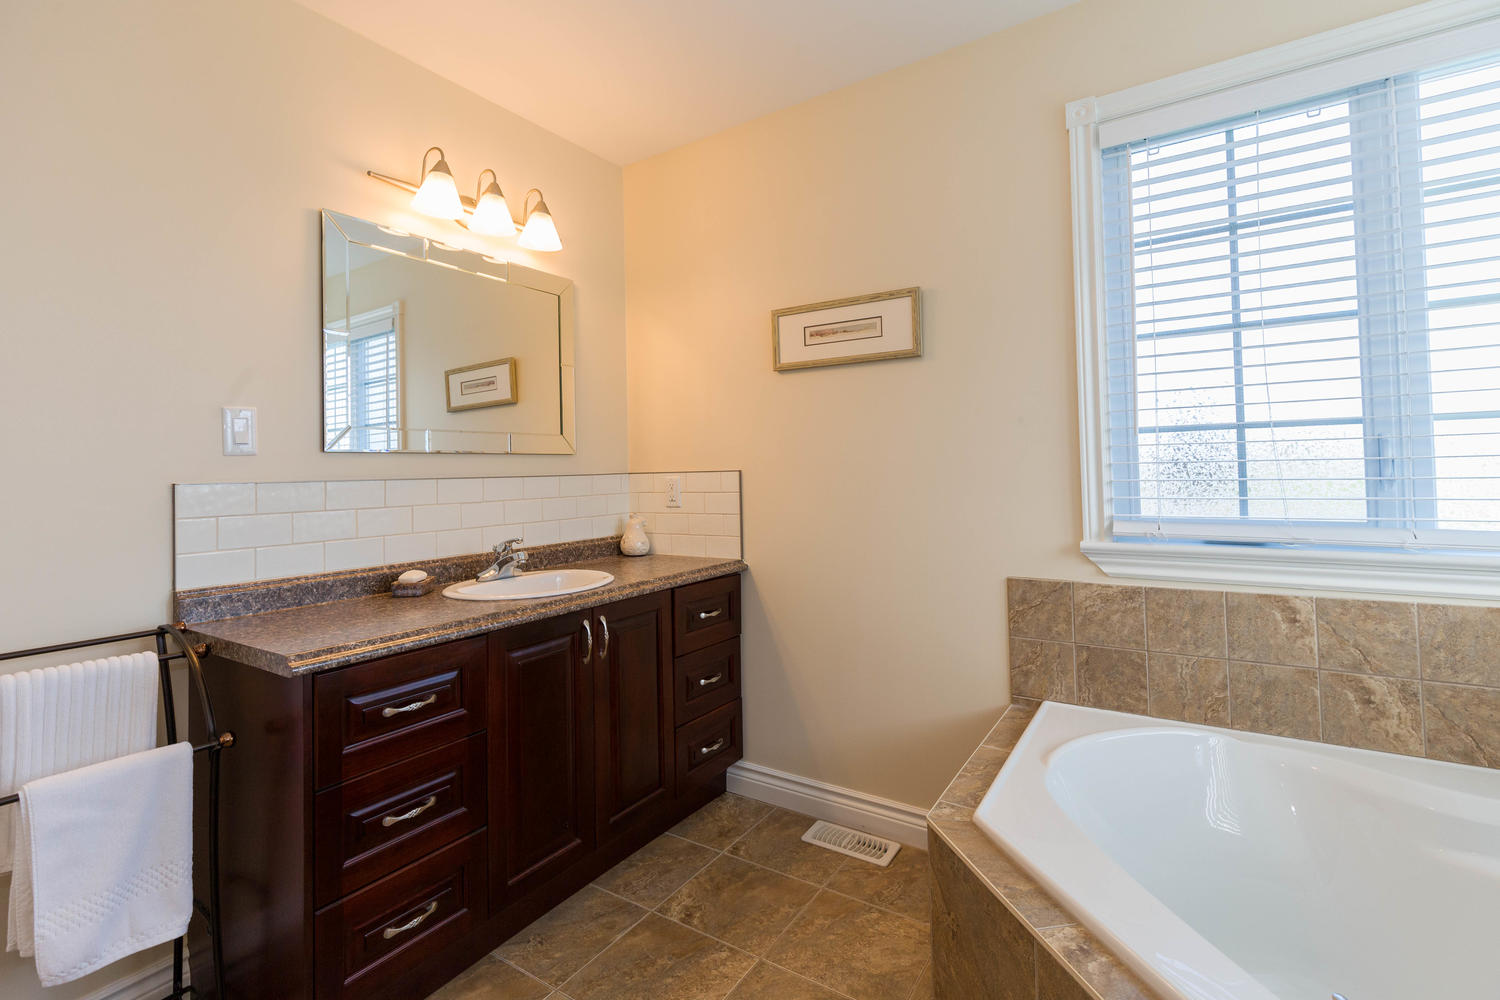 Beautiful master bathroom with a large soaker tub, gorgeous vanity, large separate shower and its very own walk-in closet.  That's right TWO walkin closets in total for the master.  HERS AND HERS!